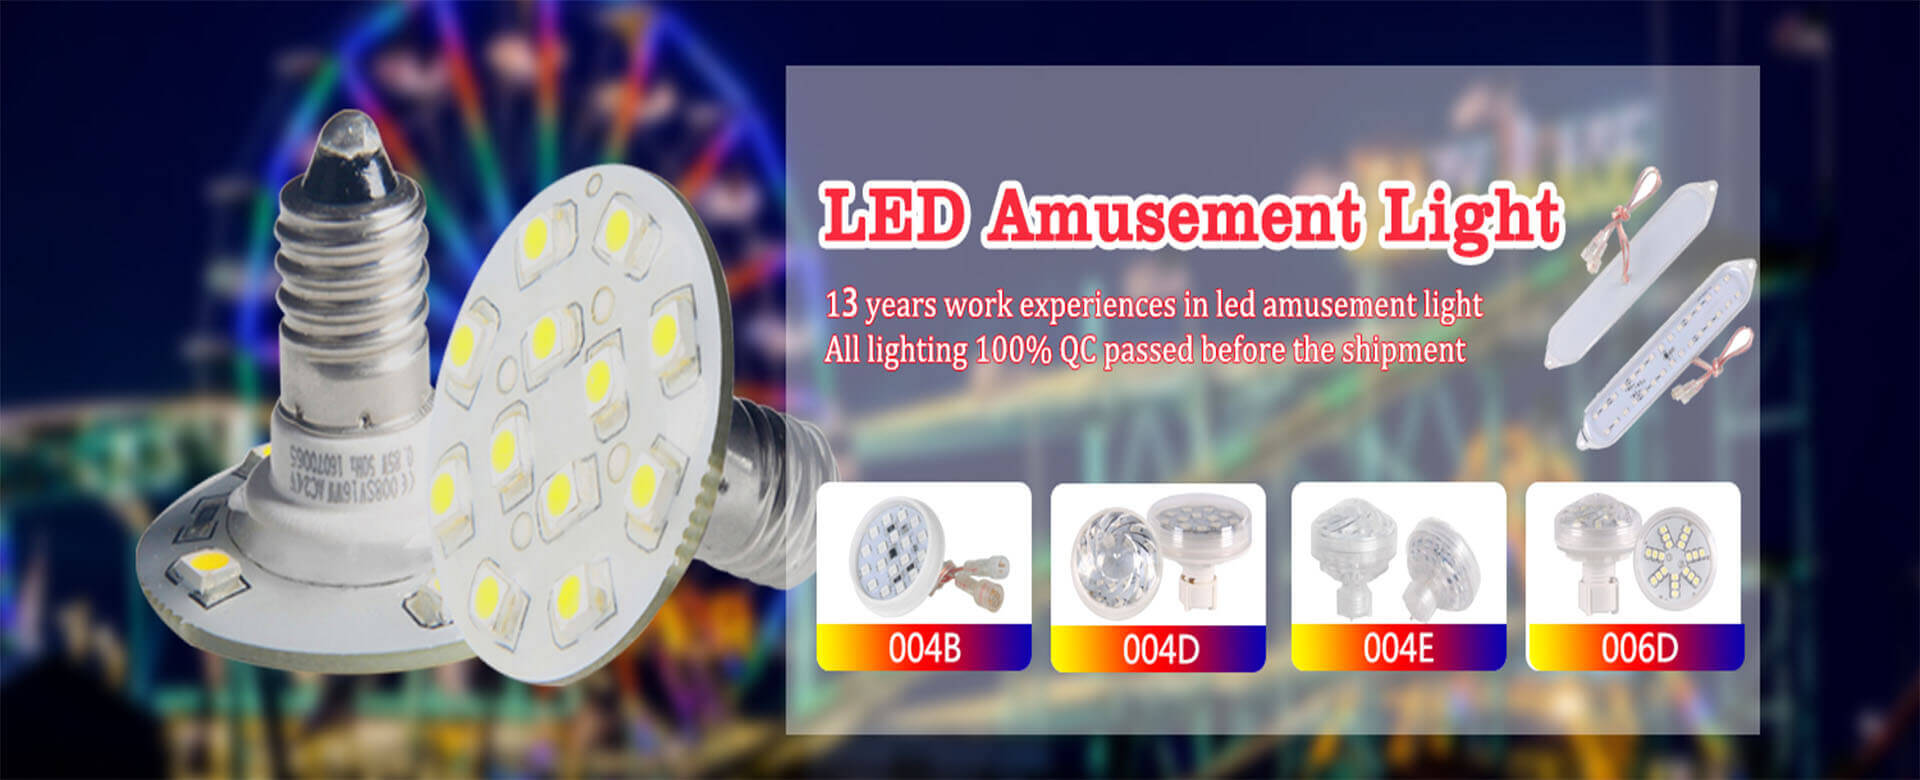 LED Amusement light